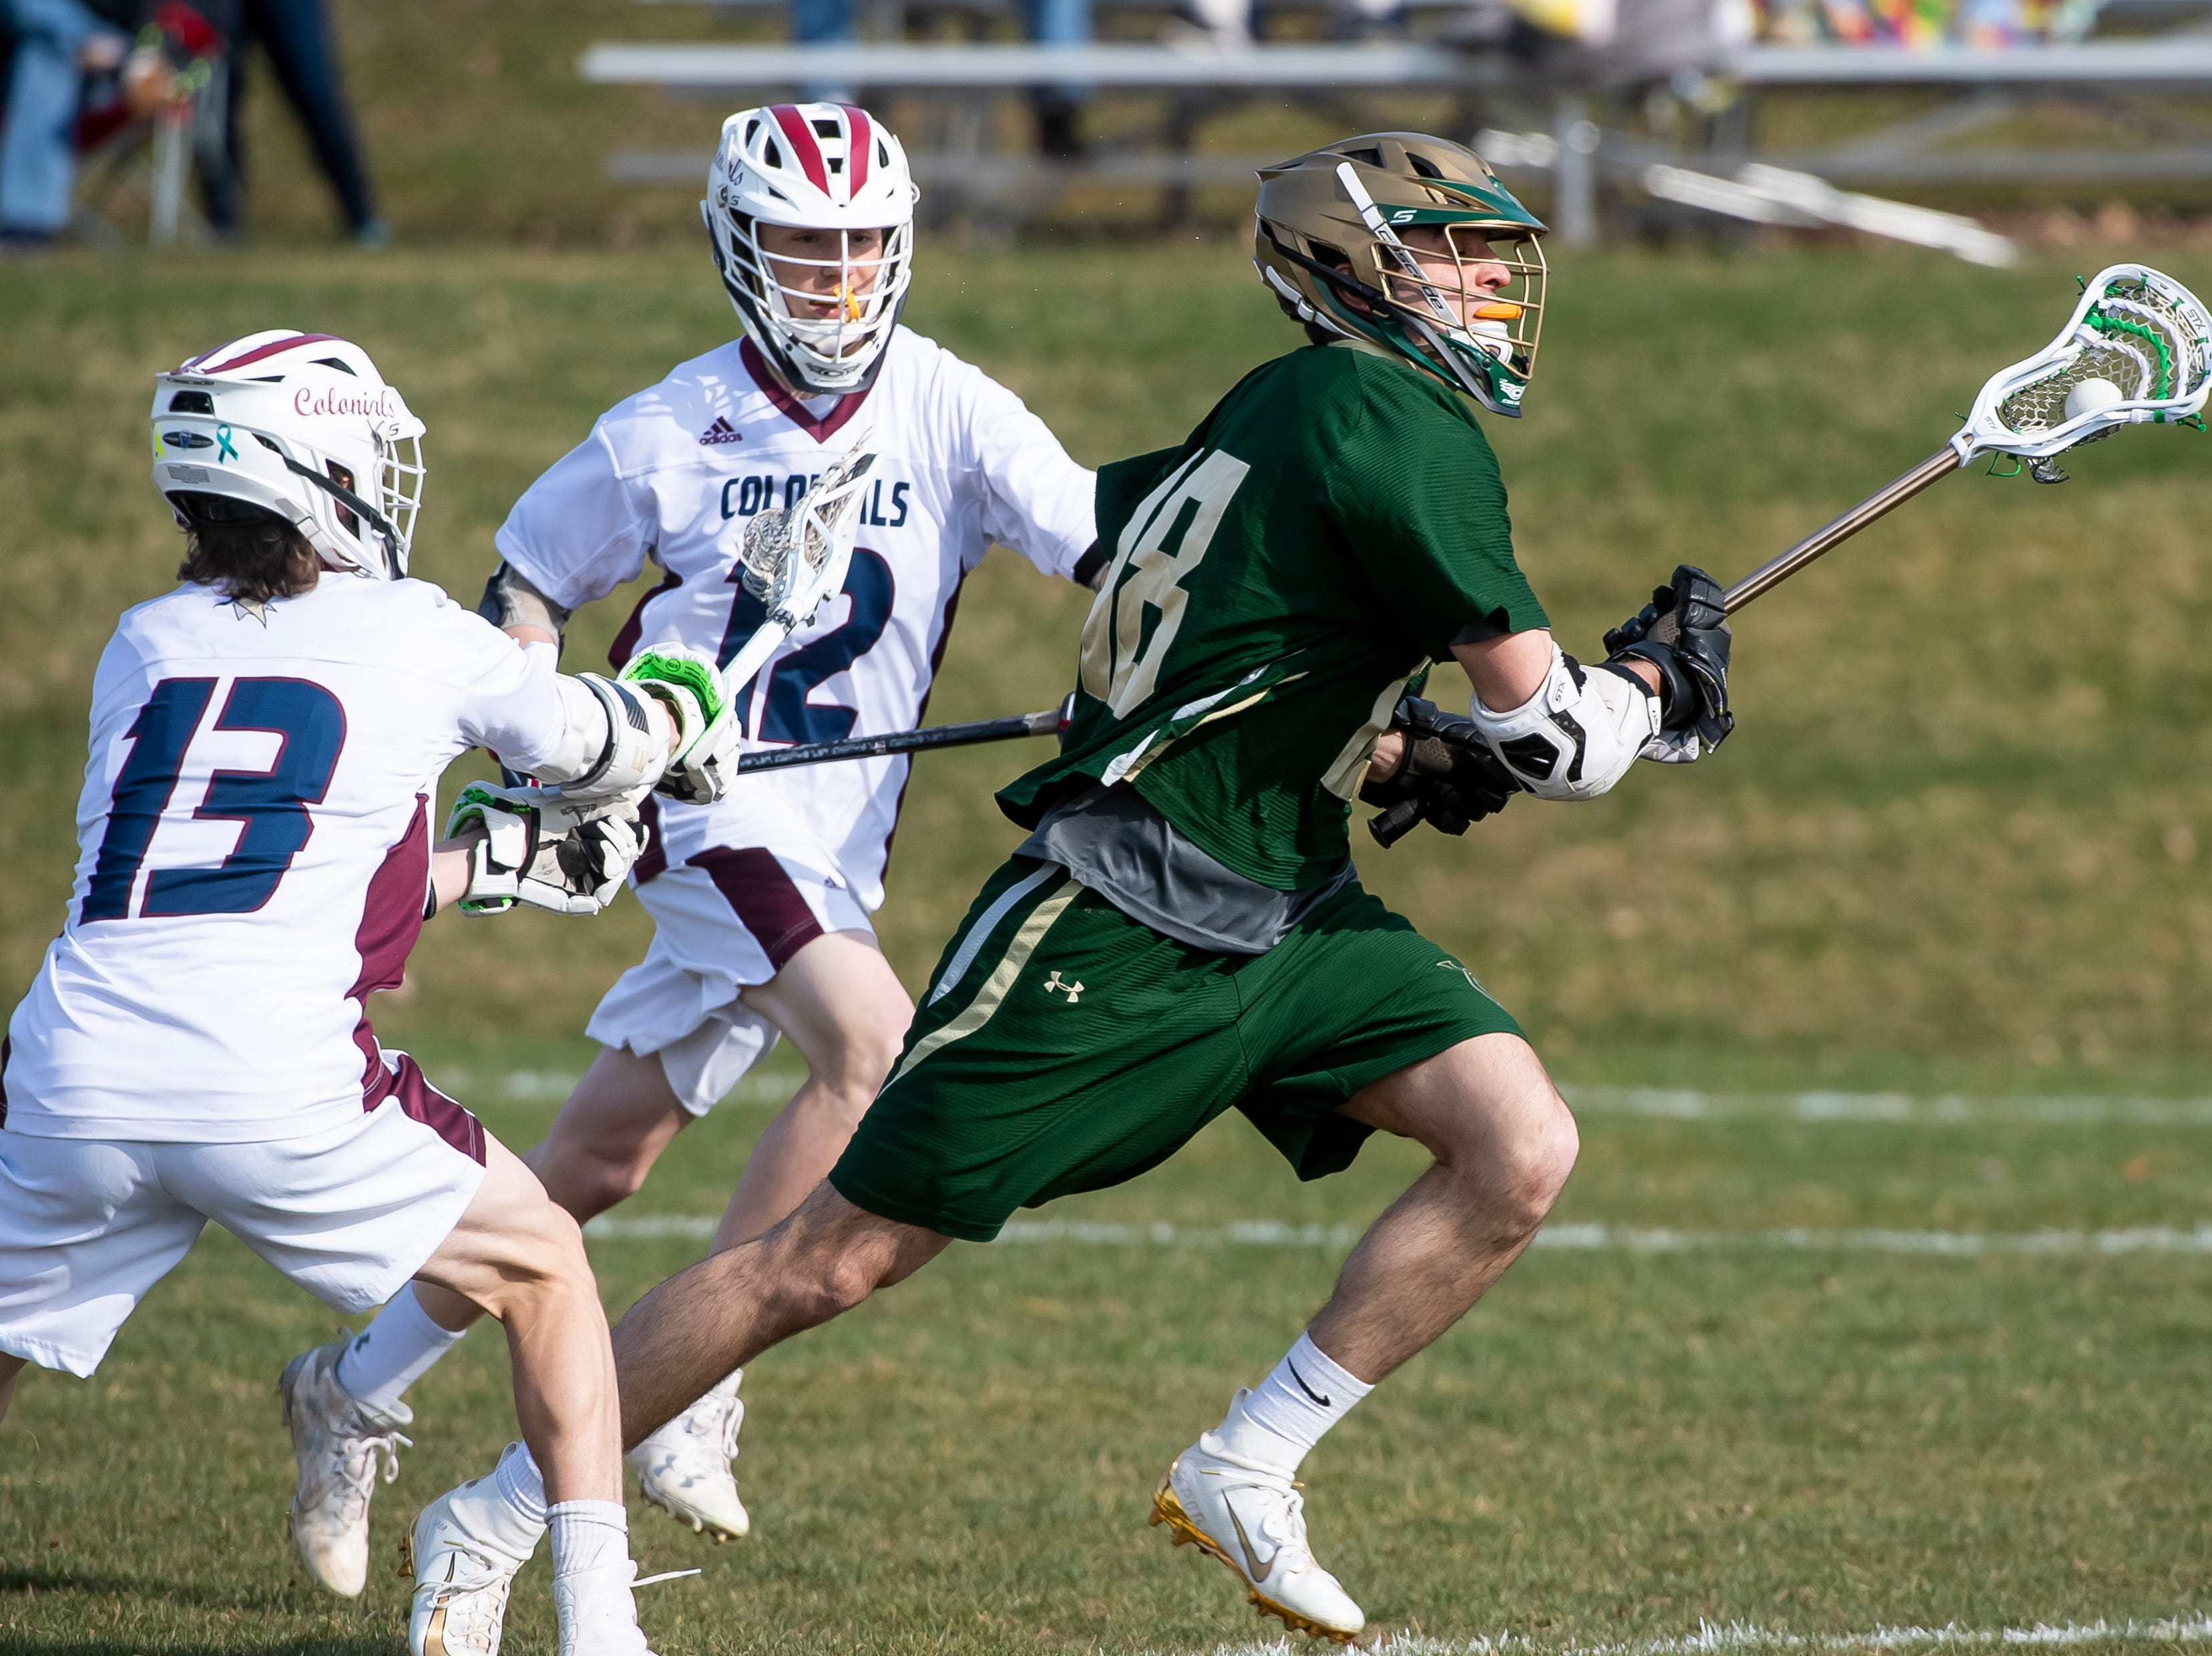 York Catholic's Cole Witman breaks through New Oxford's Connor Herring (13) and Brandon Carver (12) during a YAIAA boys' lacrosse game on Thursday, April 4, 2019. York Catholic won 14-8.